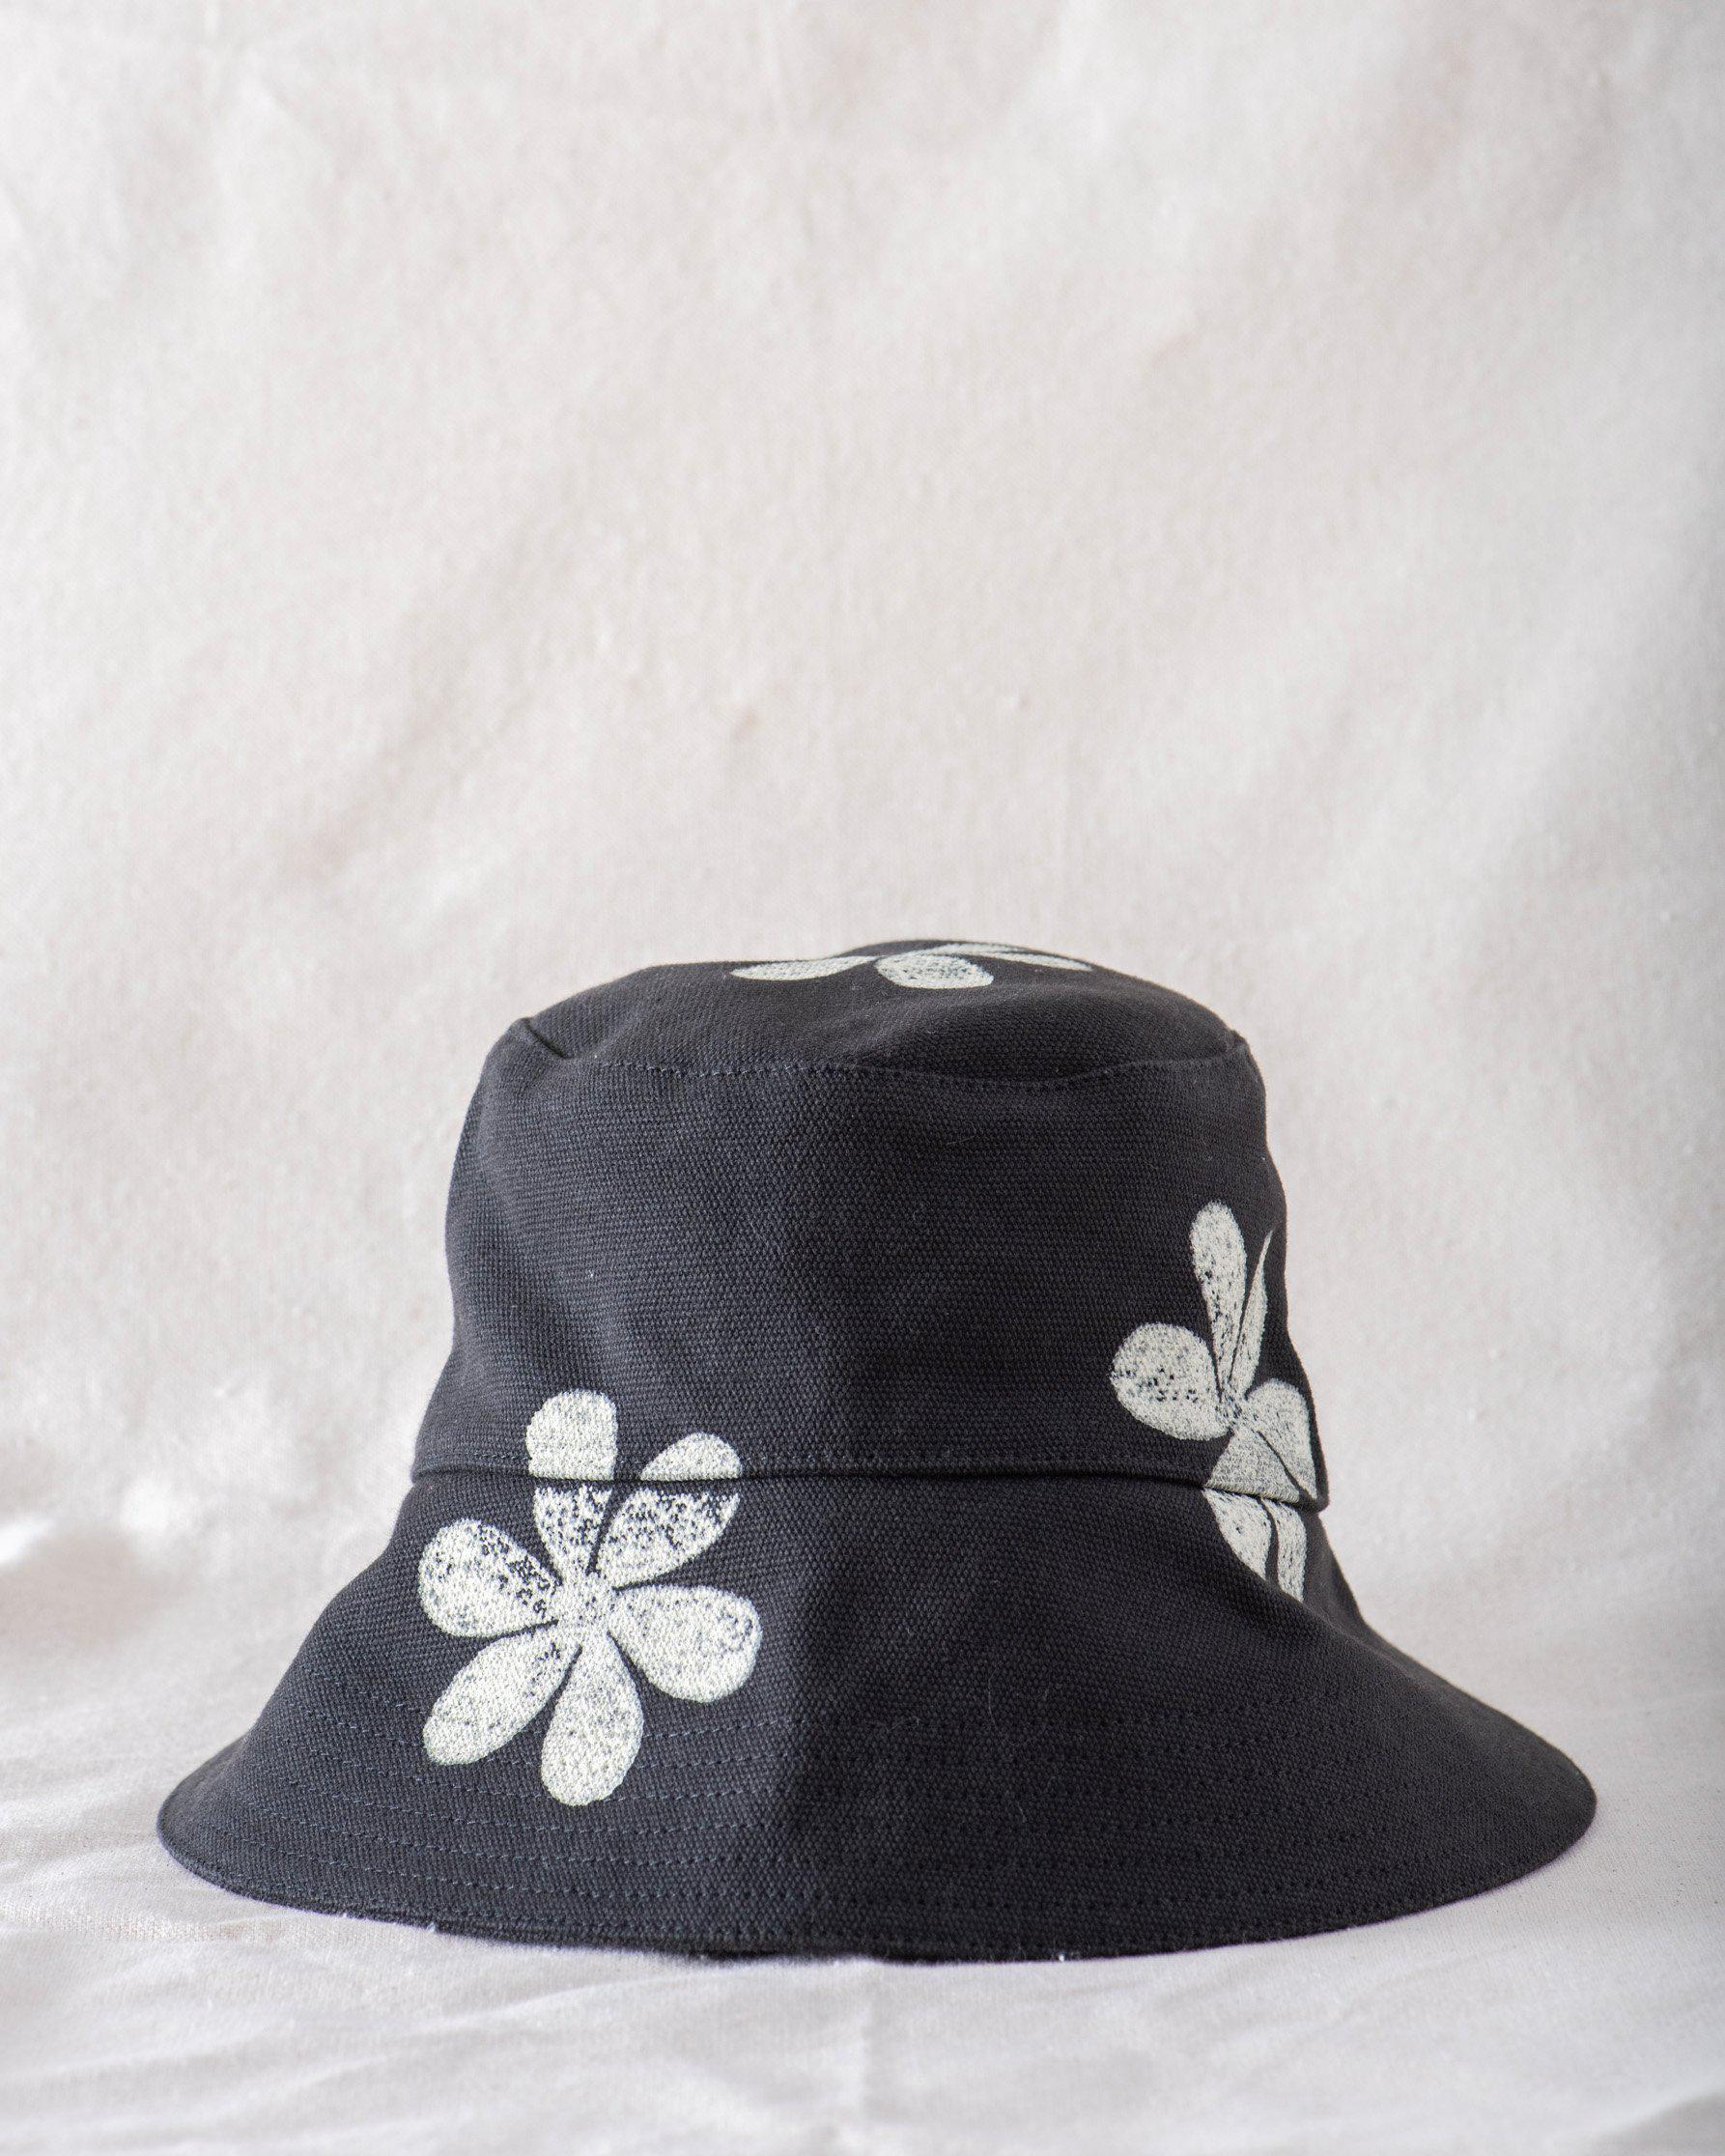 The Bucket Hat. -- Washed Black with Daisy Stamp